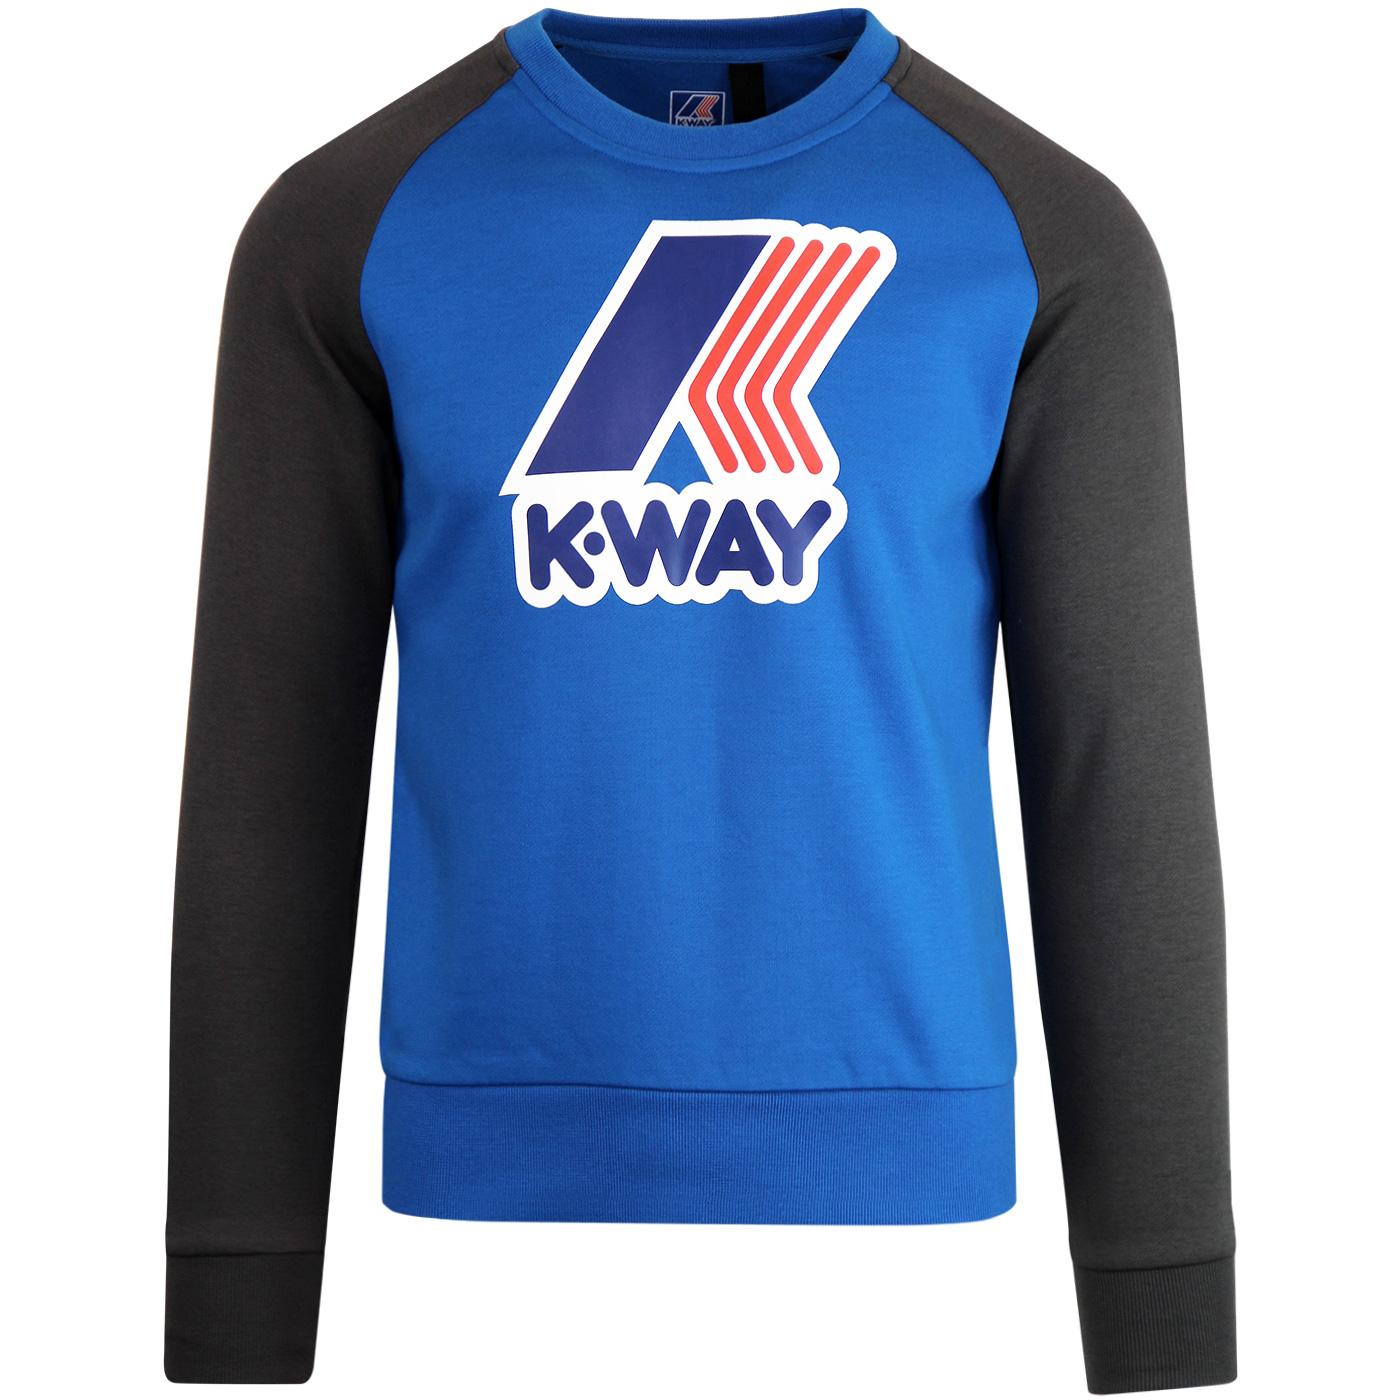 Le Vrai Floyd K-WAY Retro 80s Logo Sweatshirt BLUE